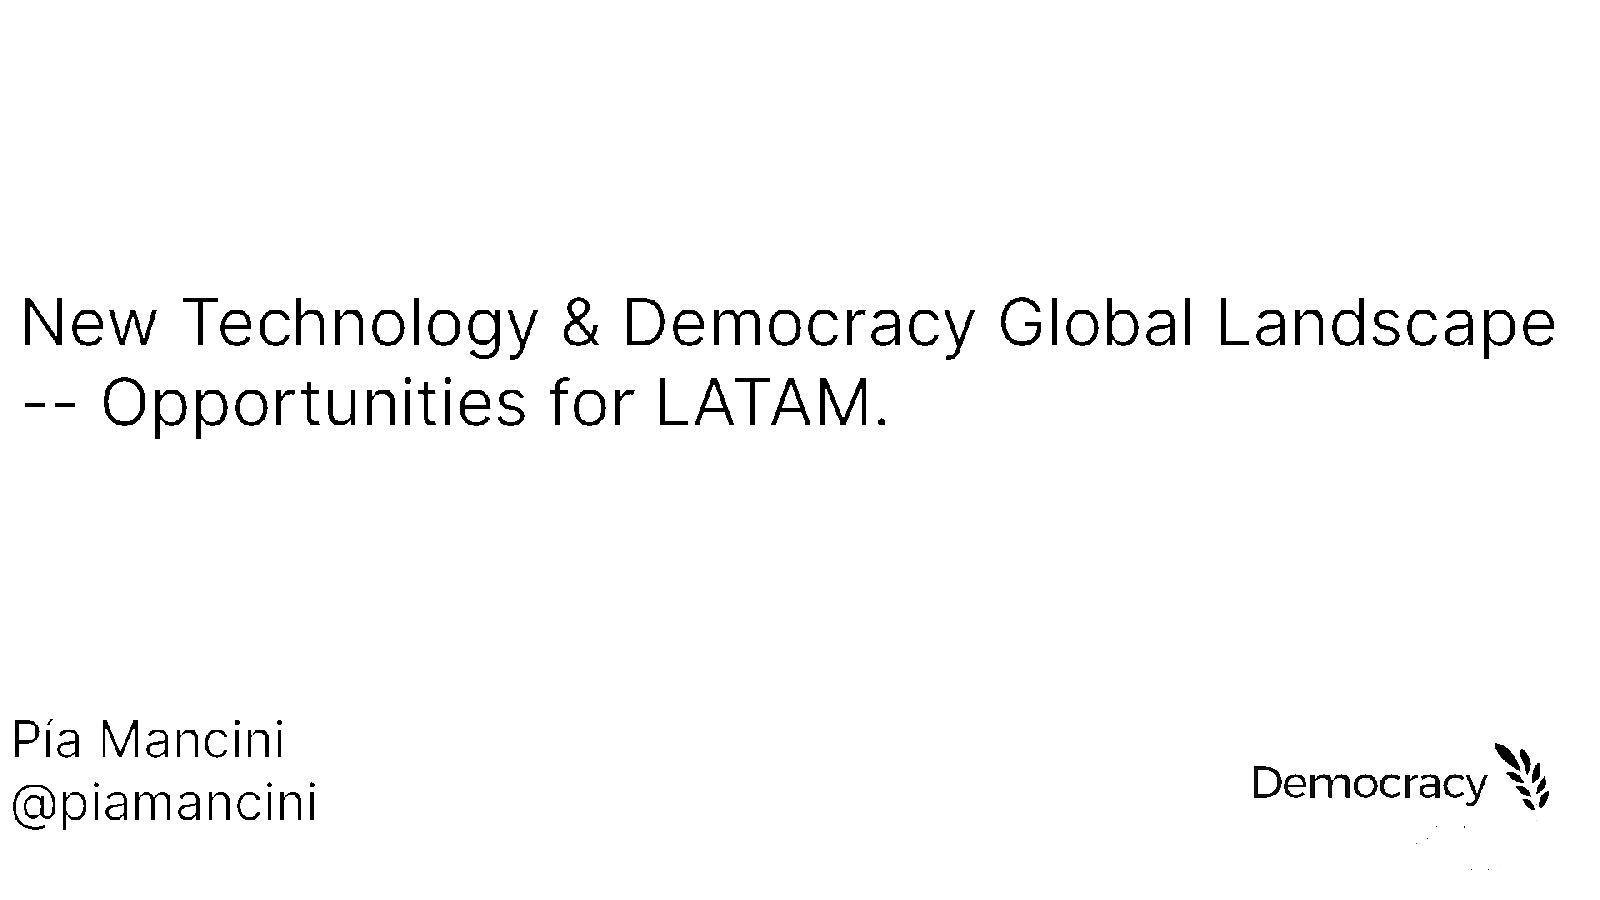 New Technologies and Democracy Landscape -- Opportunities for Latin America.